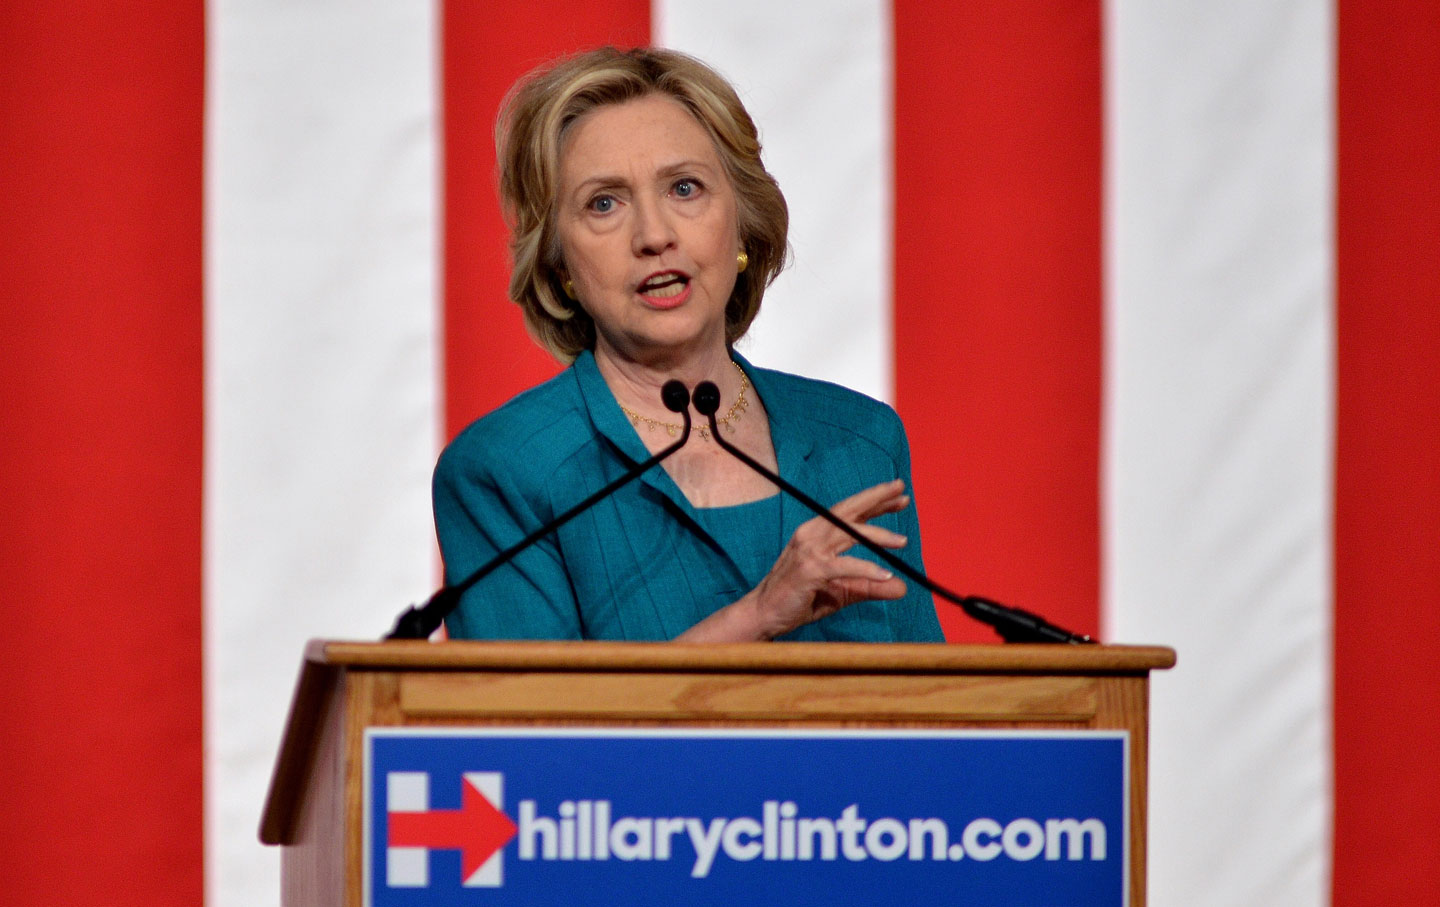 Hillary Clinton during a campaign stop at Florida International University in Miami